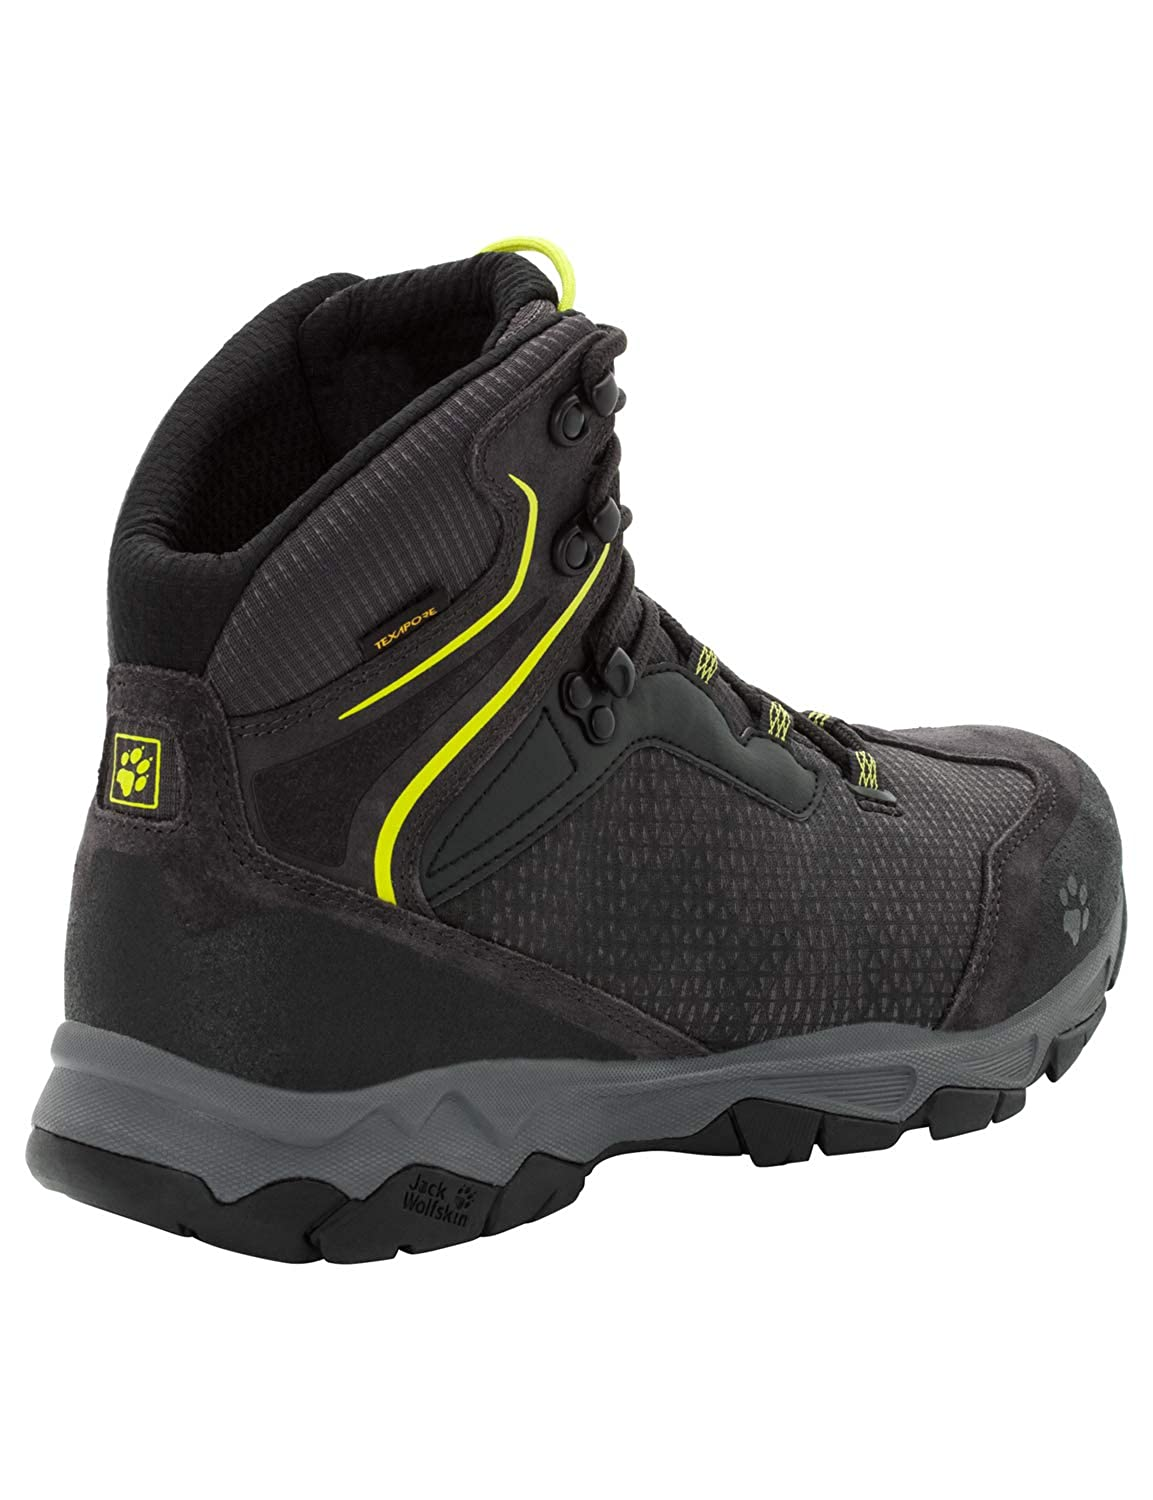 c15c9663524 Amazon.com | Jack Wolfskin Rock Hunter Texapore Mid Men's Waterproof ...